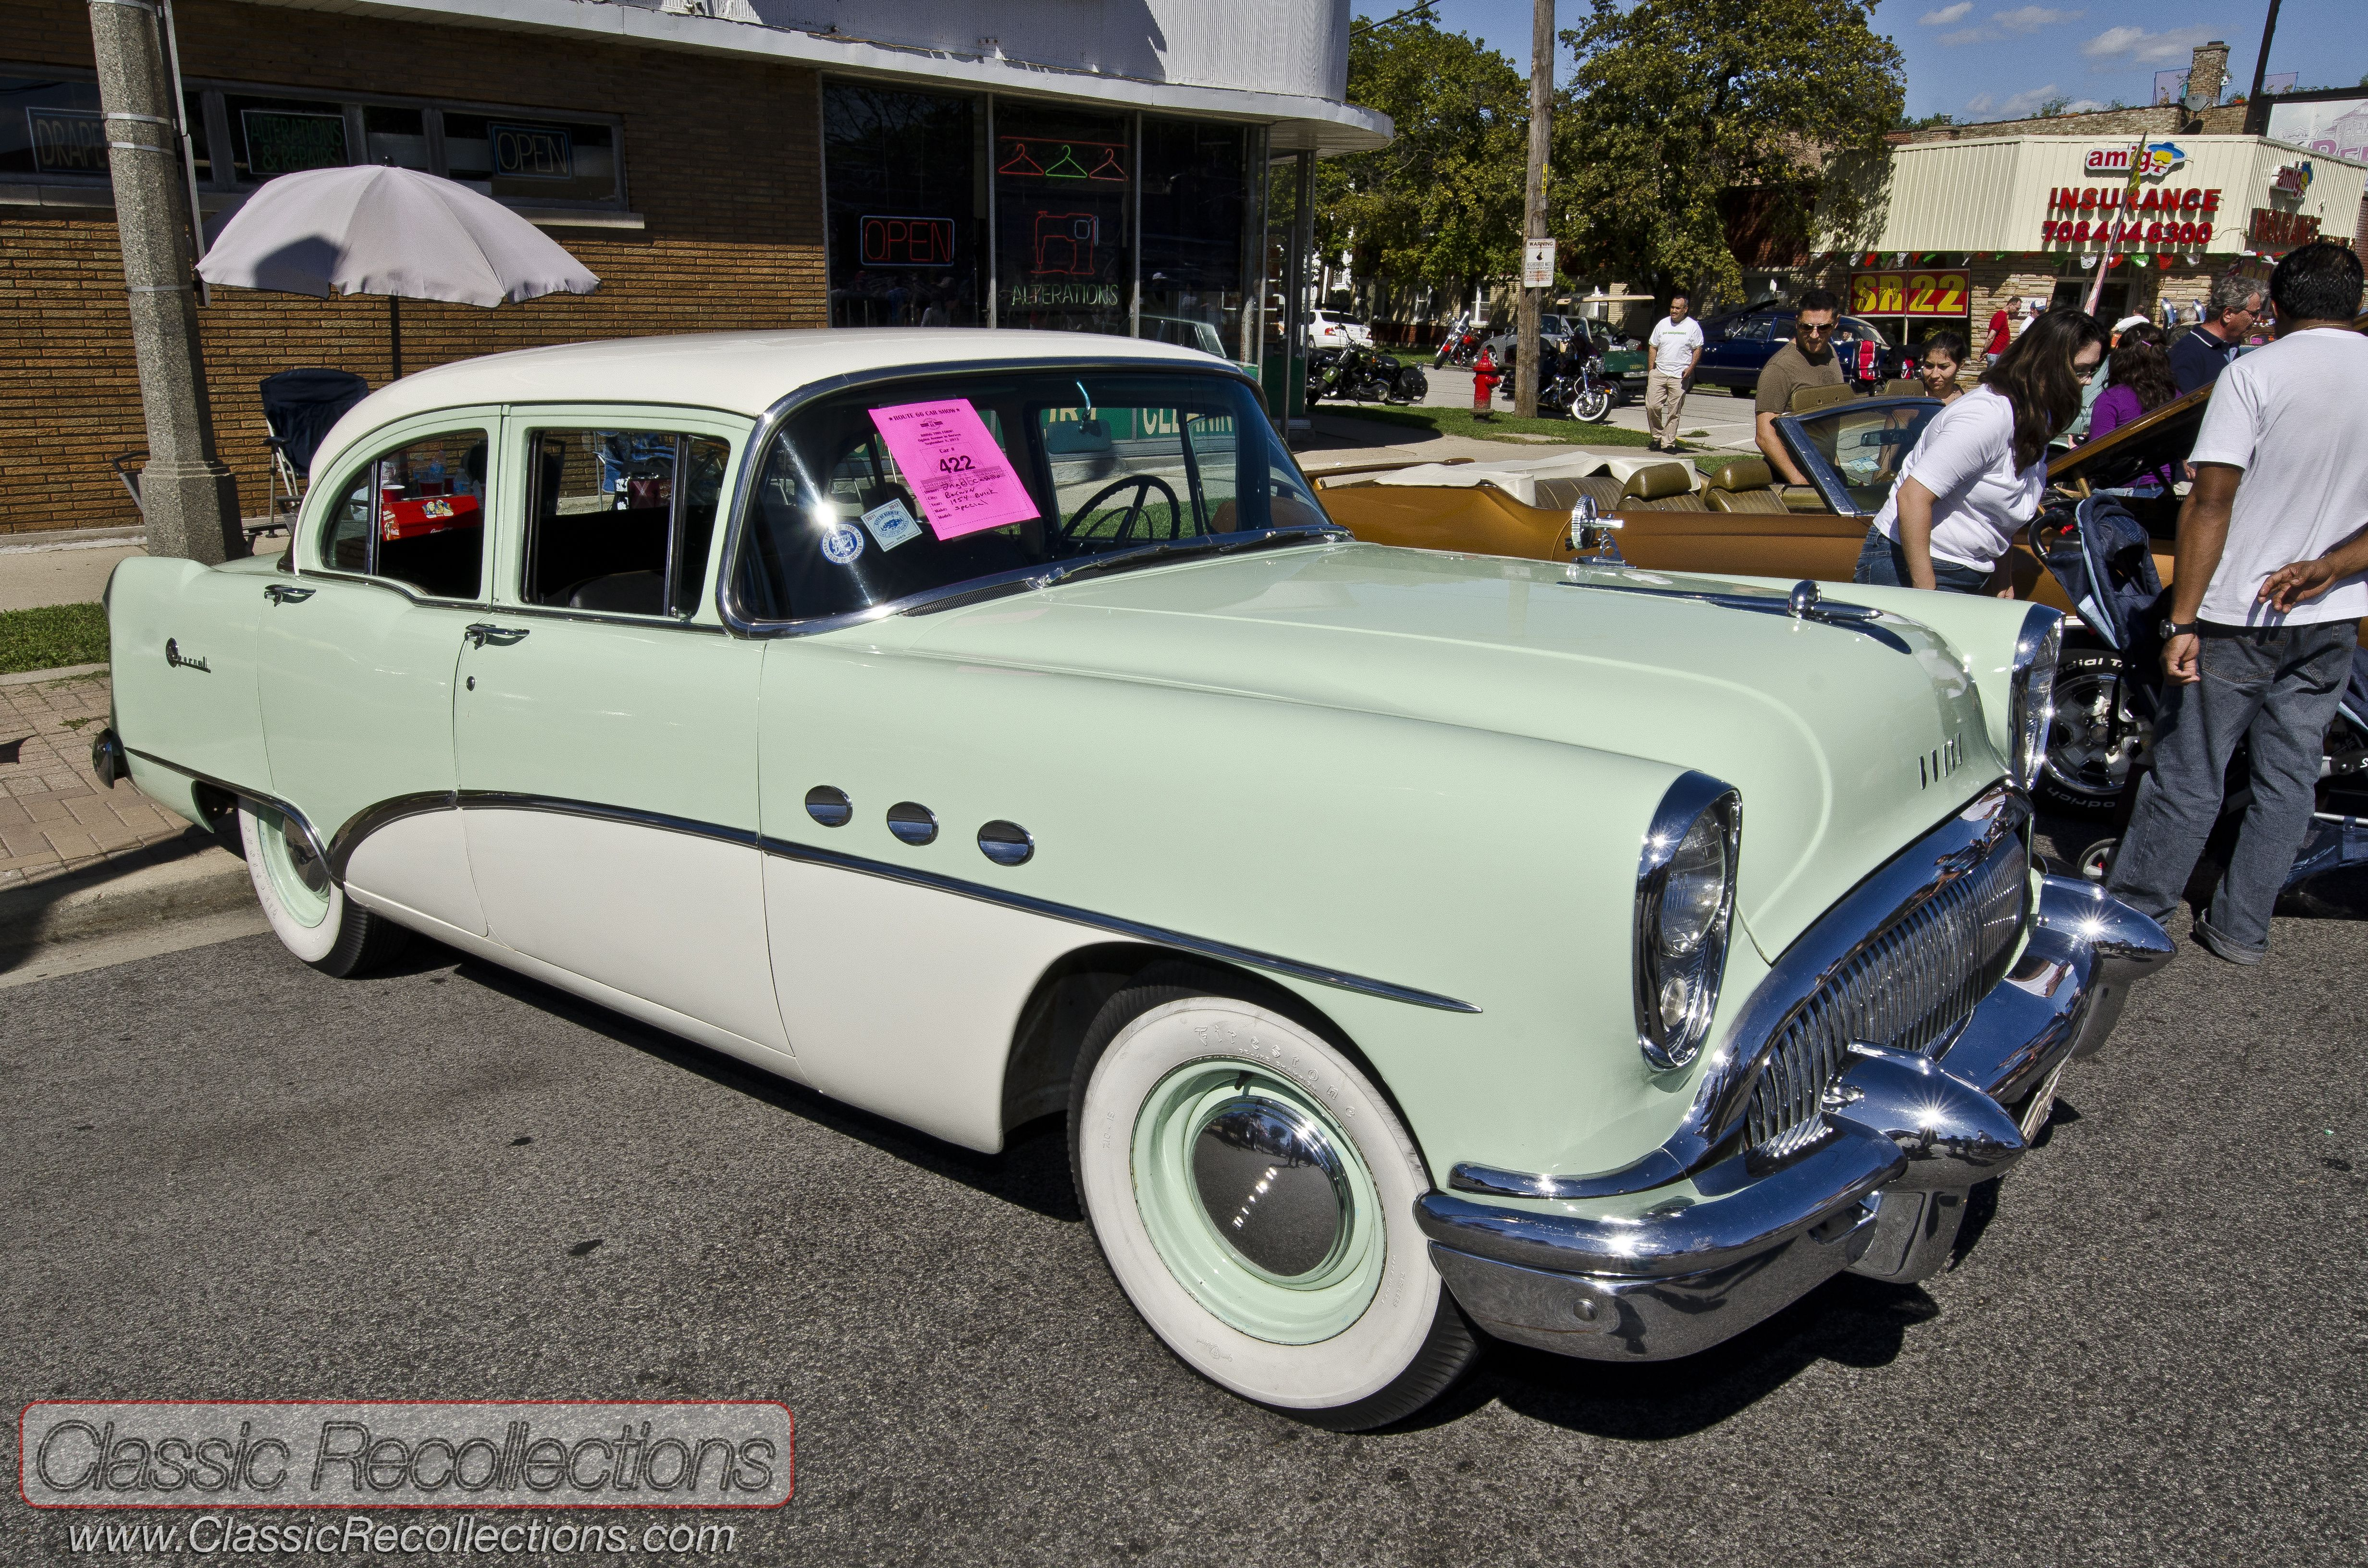 Feature 1954 Buick Special 1954 Buick Buick Buick Cars